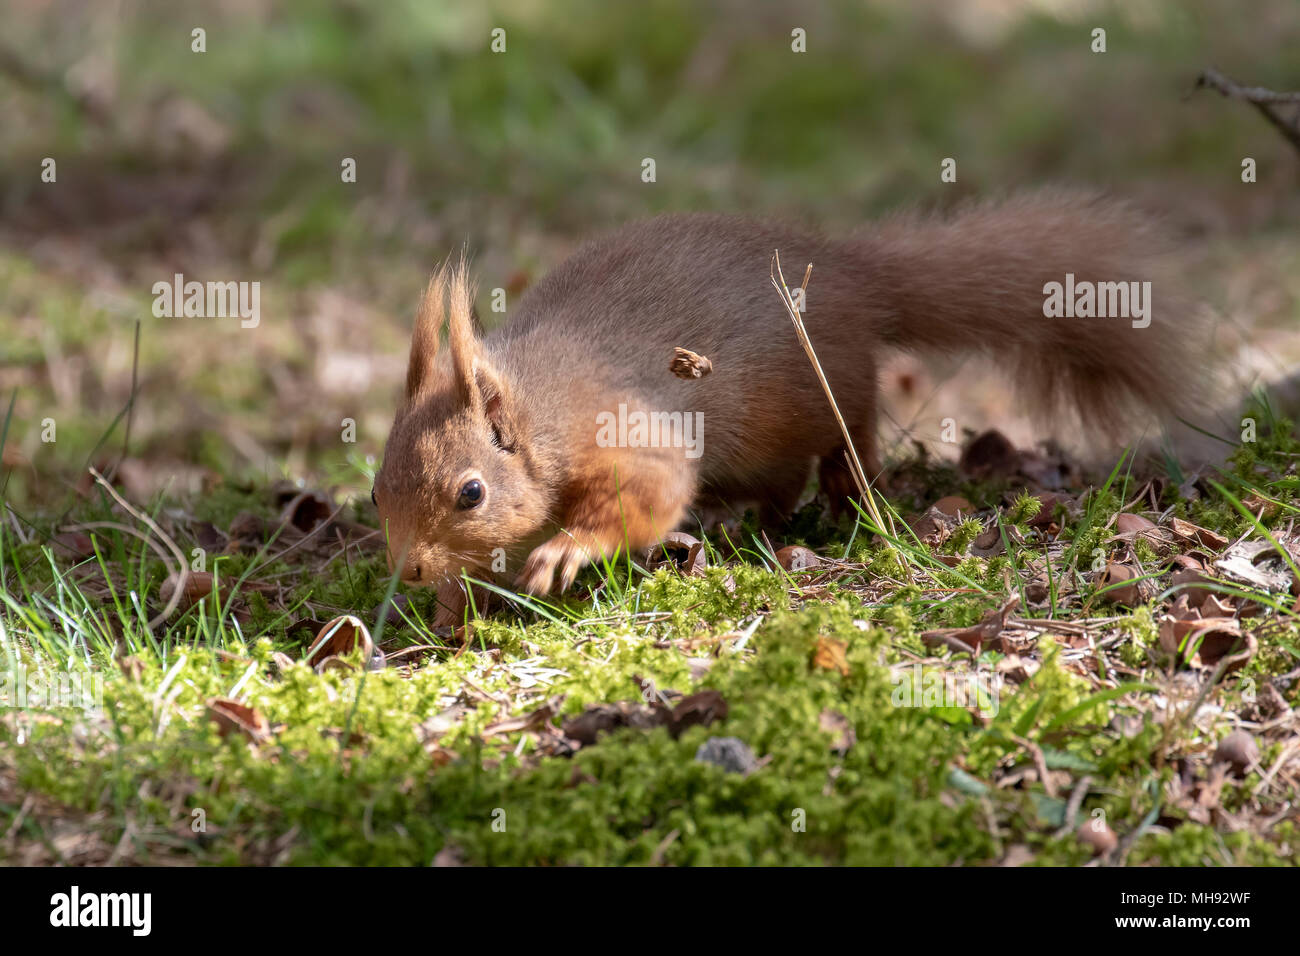 Red squirrel, Sciurus Vulgaris, silhouette sitting on heather and grass in the forests of cairngorms national, scotland eating nuts Stock Photo